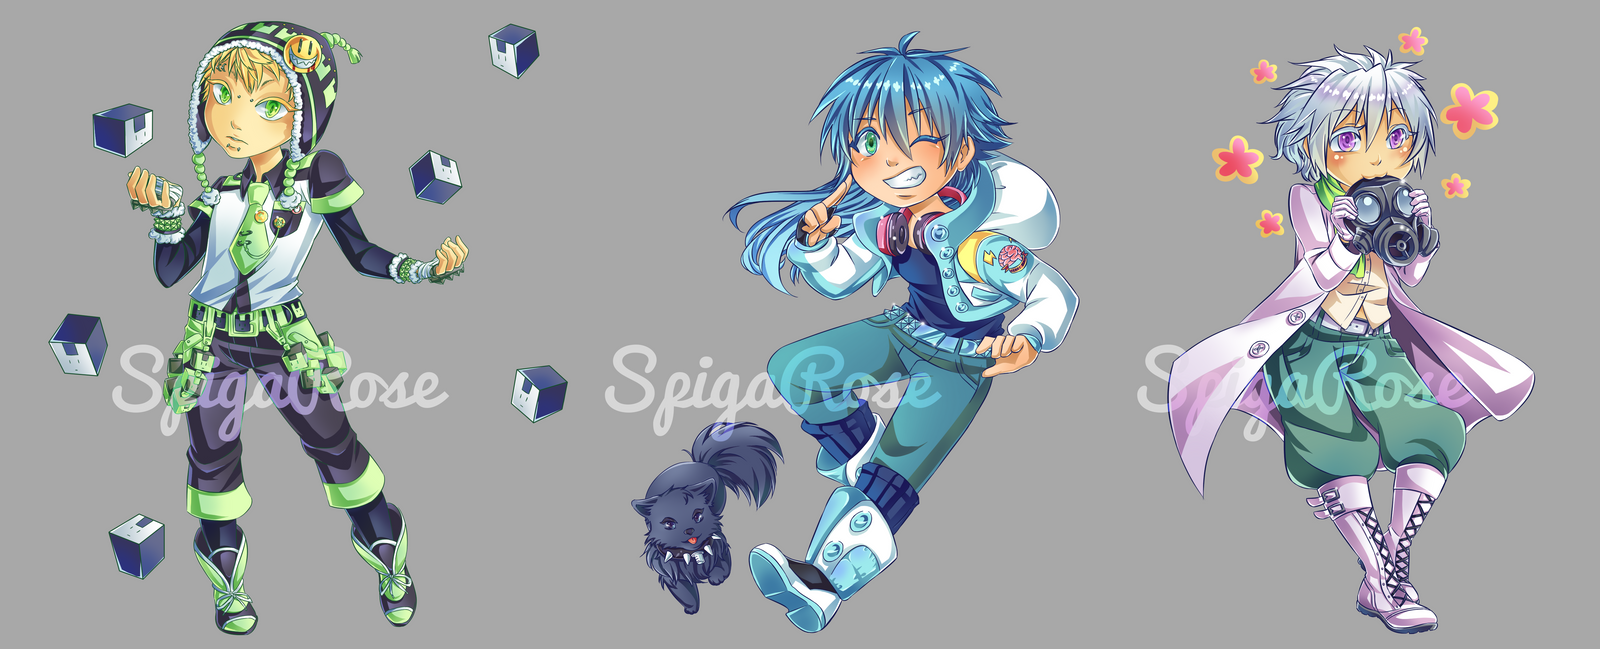 [DMMD] Aoba Noiz Clear chibi batch by SpigaRose